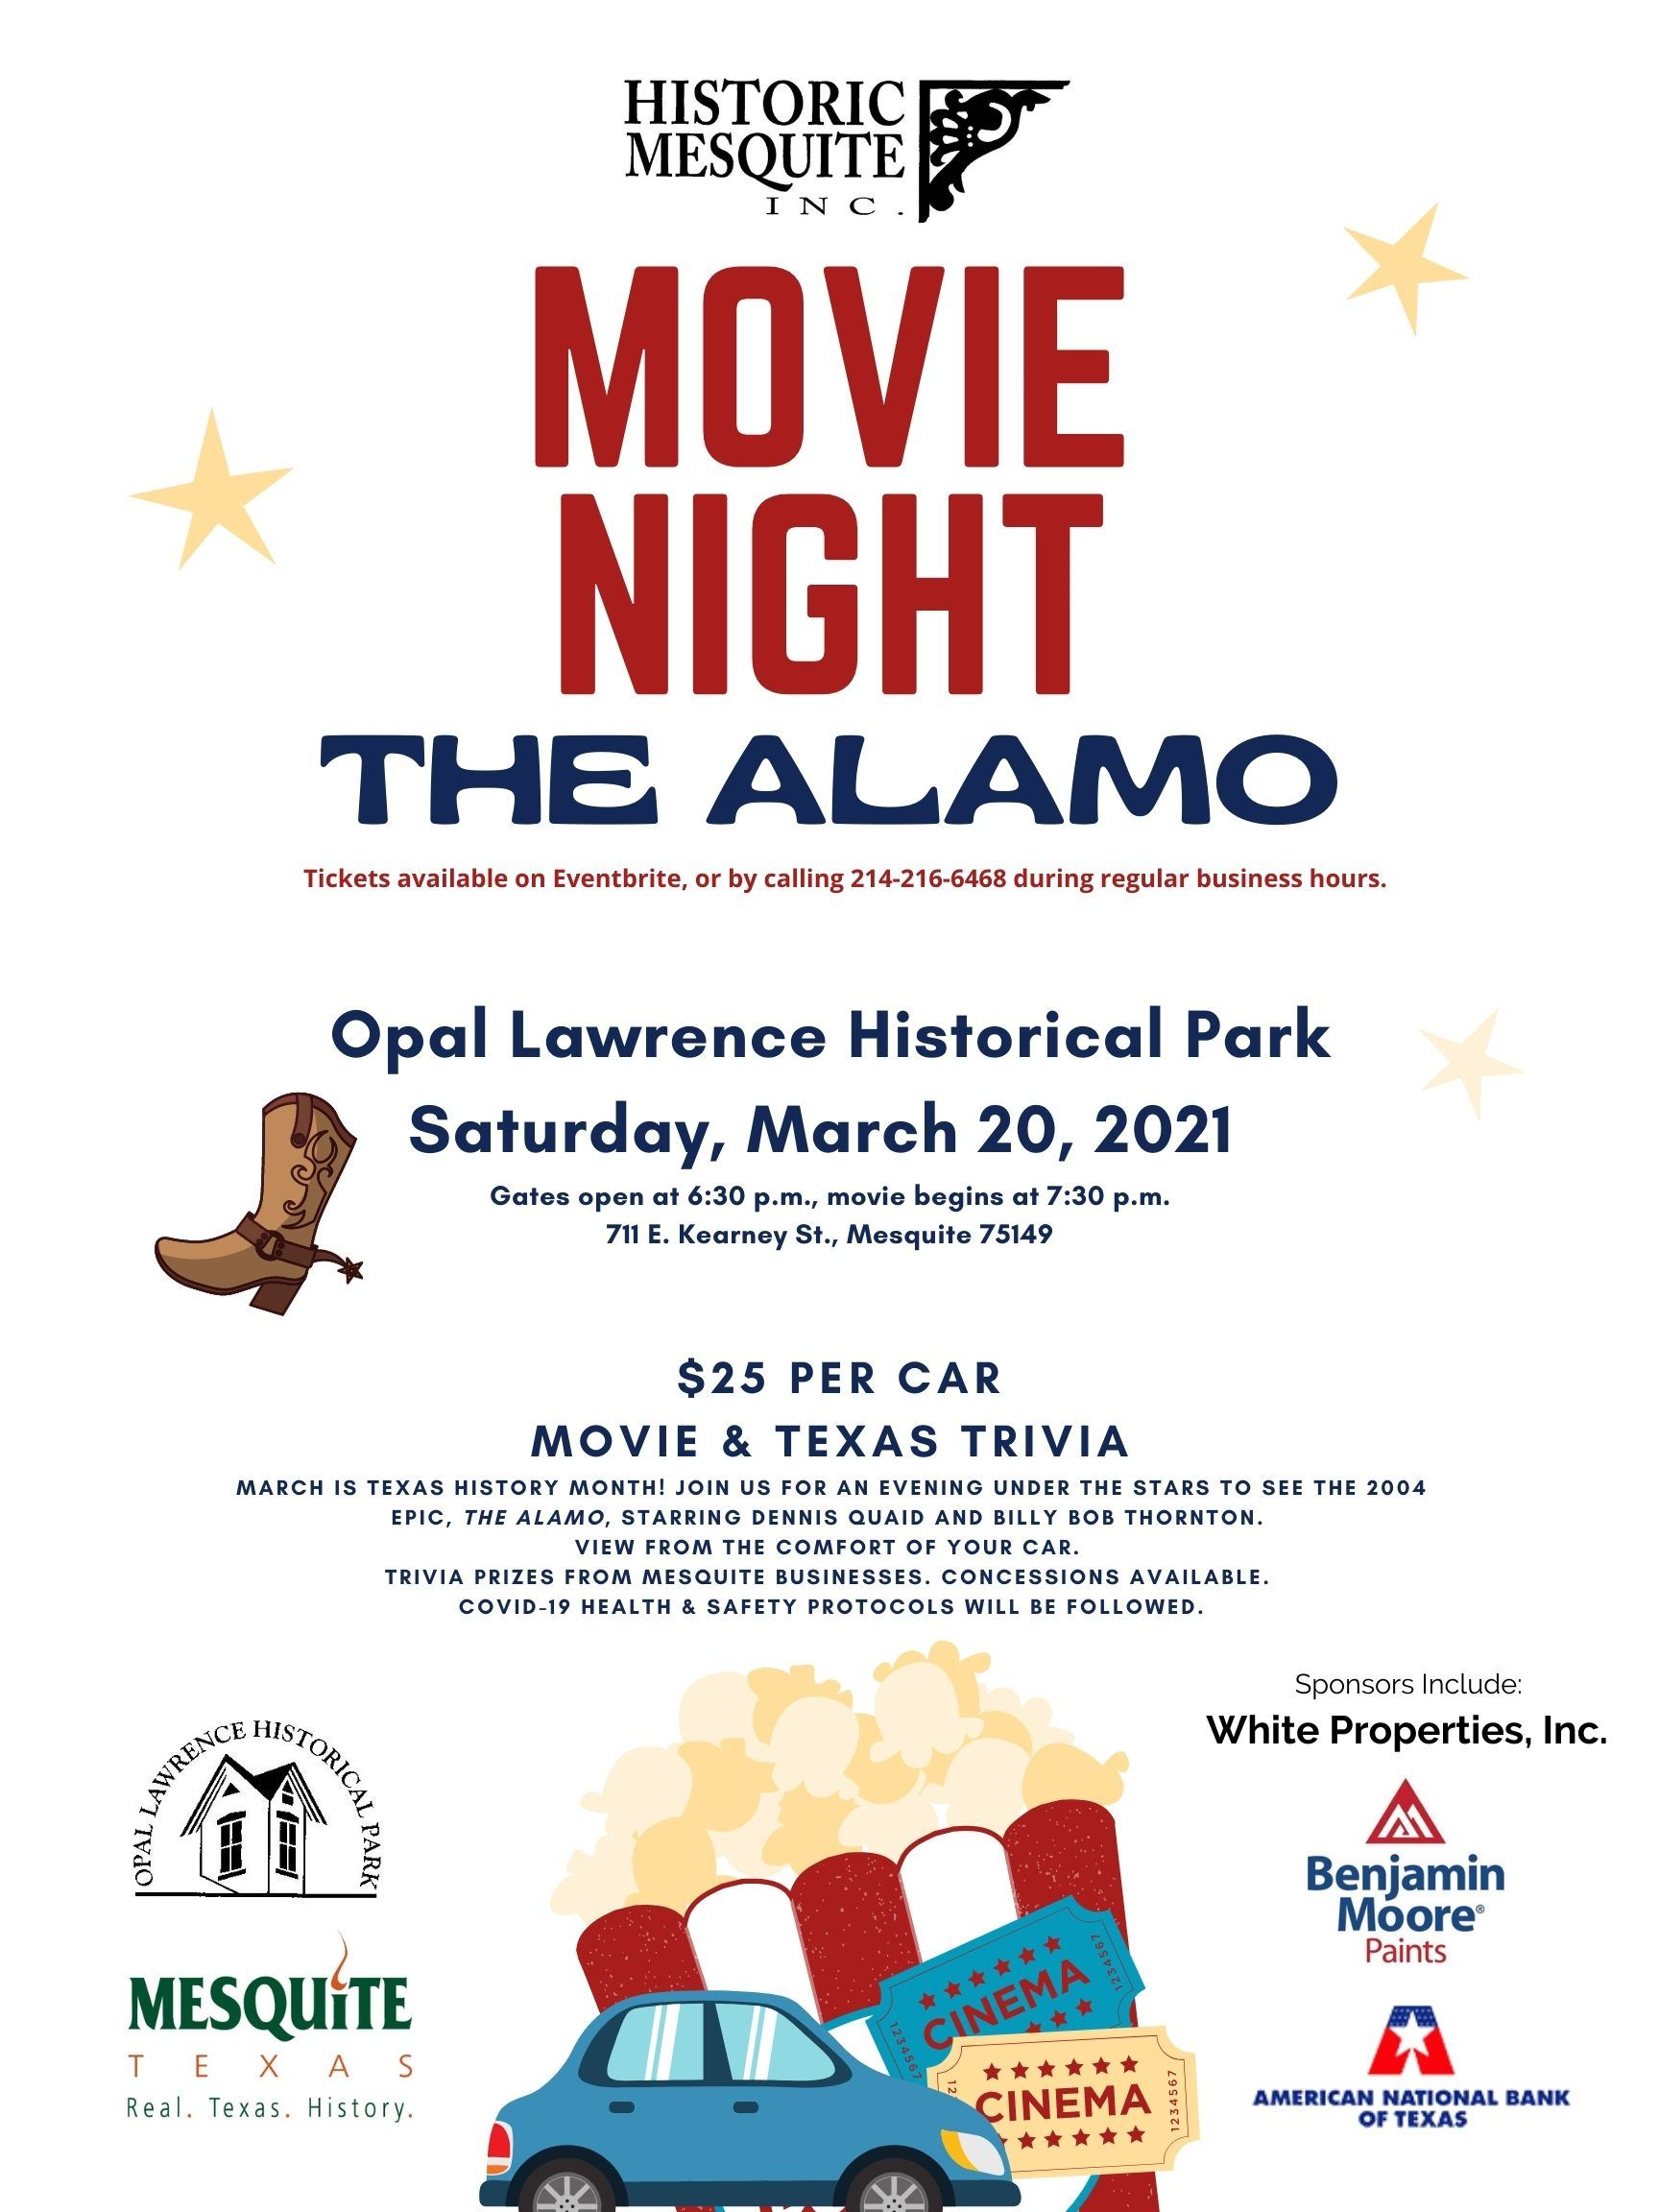 2021 March Movie Night Poster with Logos, clip art of car and popcorn, stars and boot